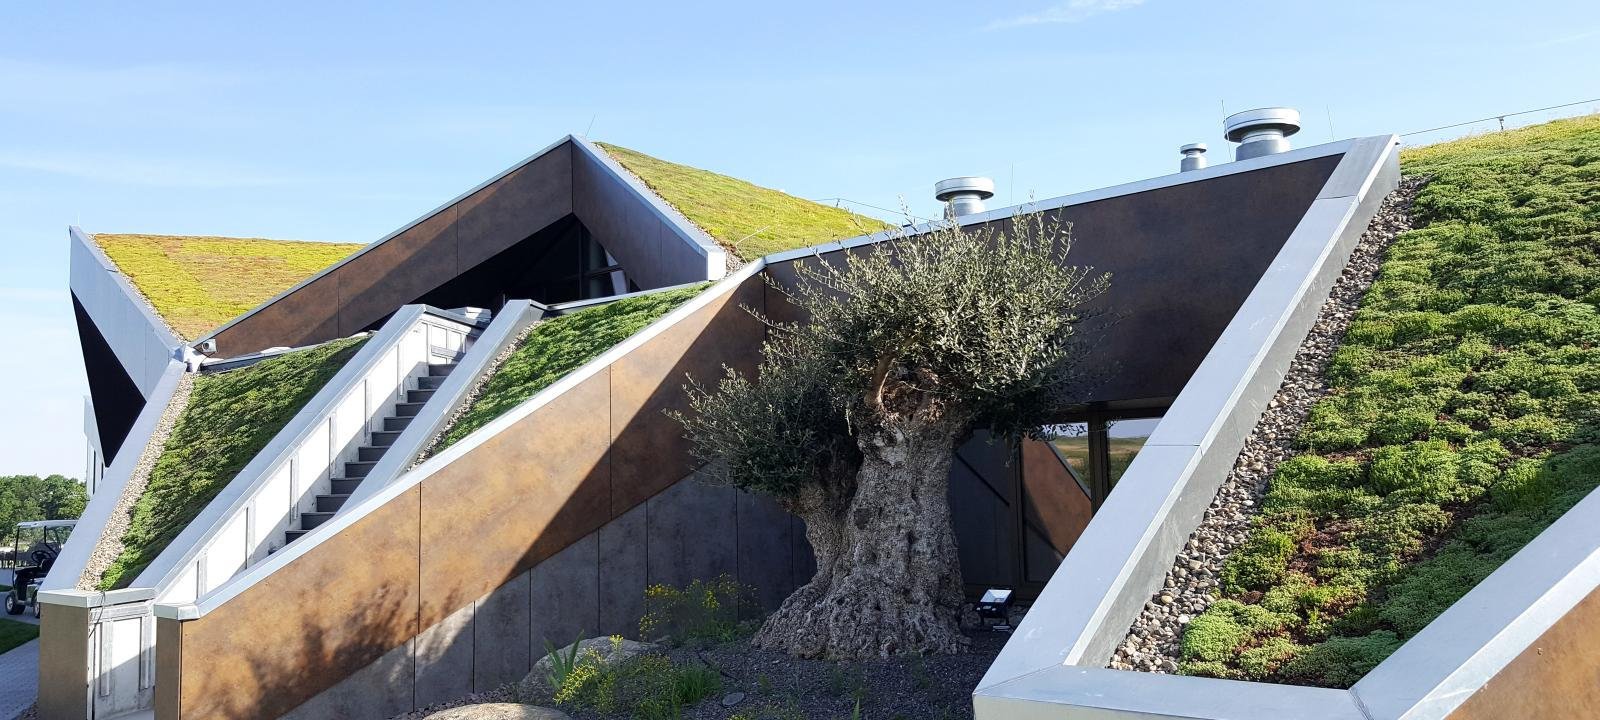 Olive tree in front of a building with a pitched green roof